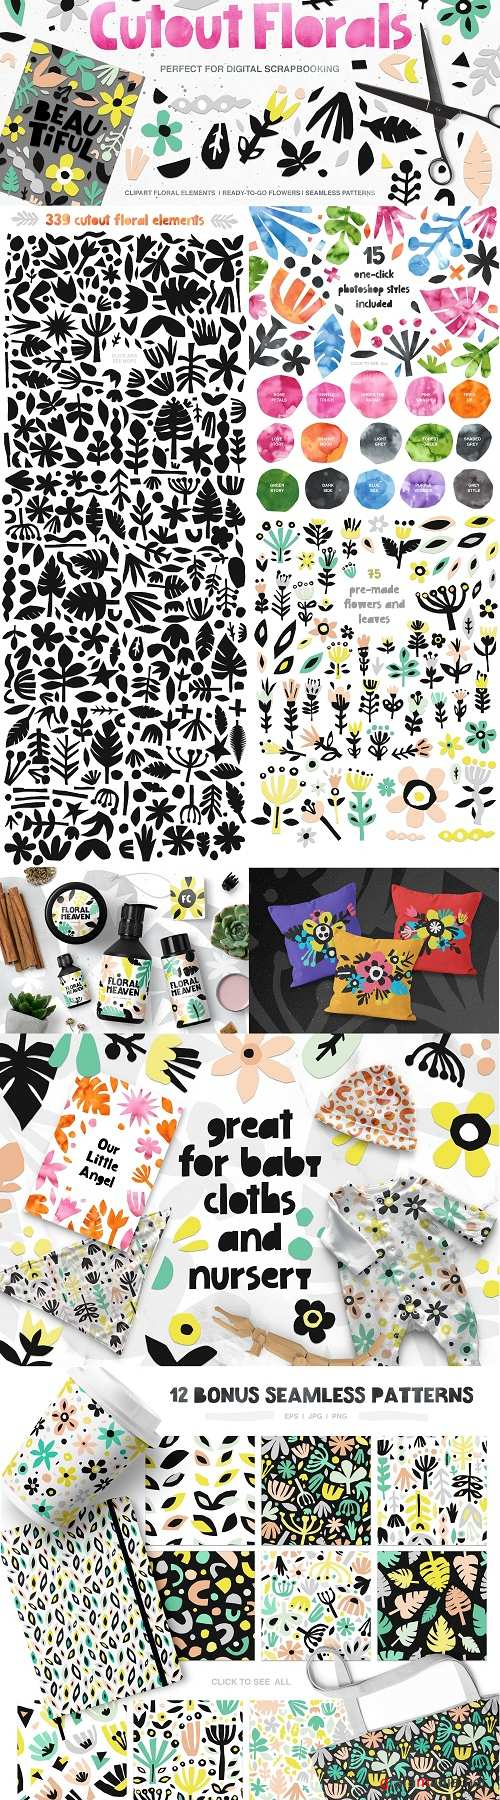 426 Cutout Floral Elements: PNG, EPS 2076425